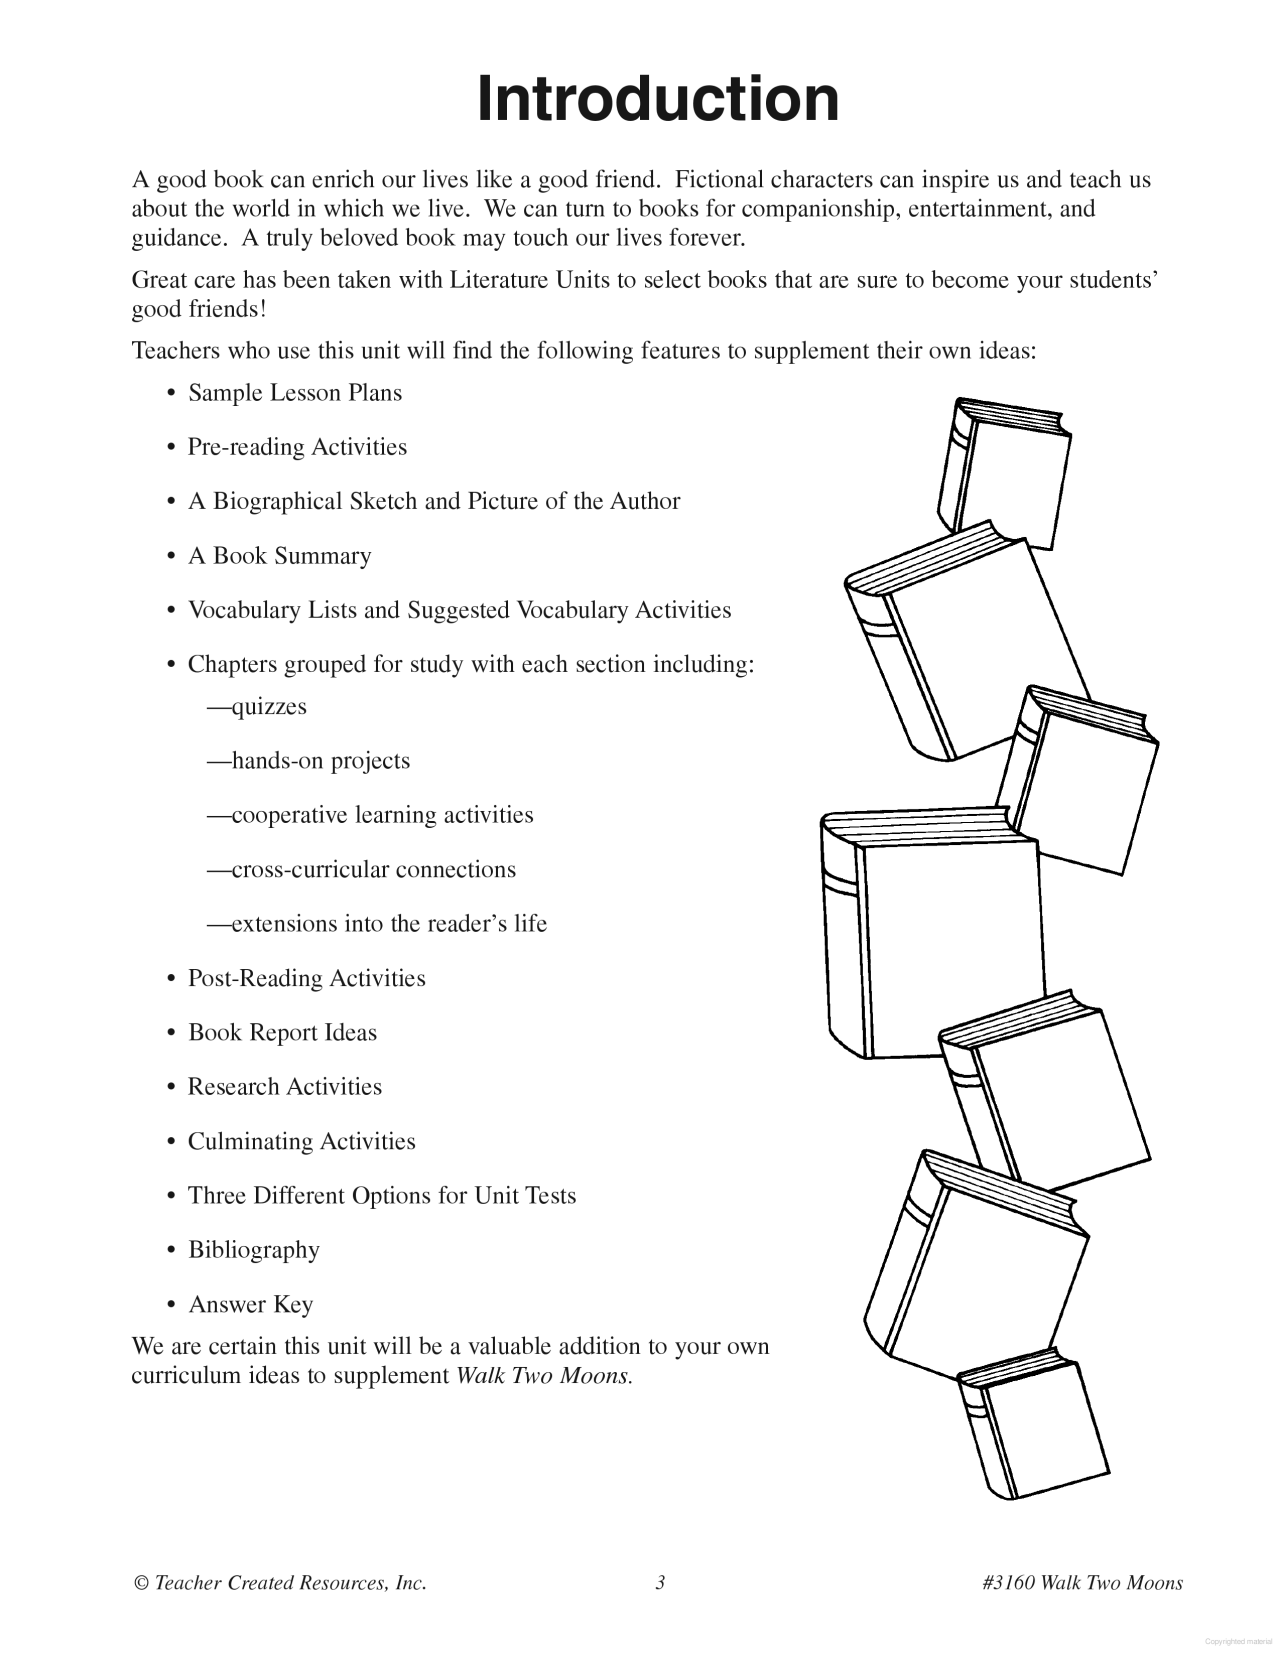 Worksheets Walk Two Moons Worksheets intro to book a guide for using walk two moons in the classroom classroom